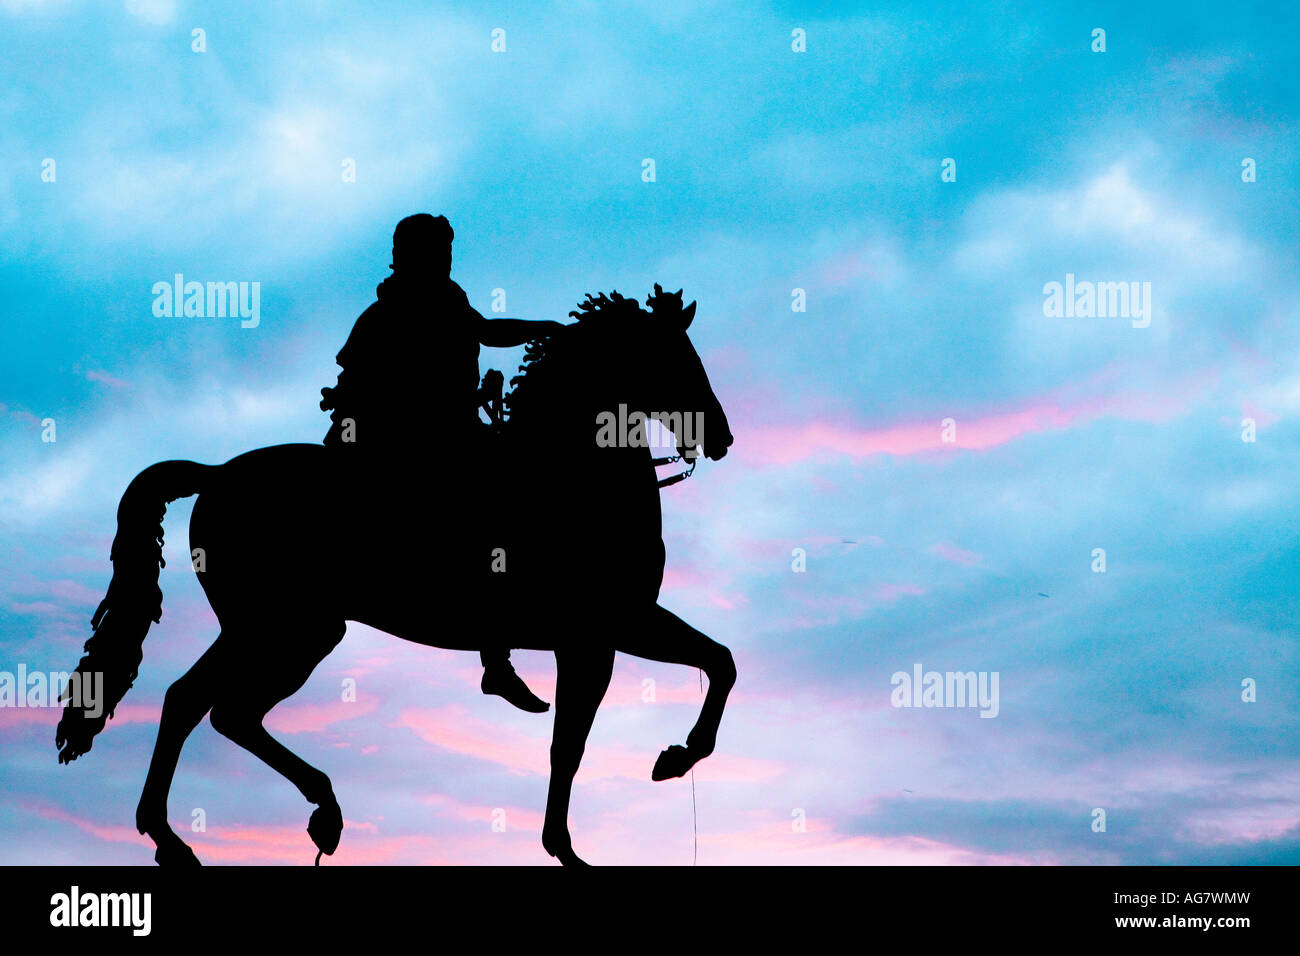 Knight Horse Stock Photos & Knight Horse Stock Images - Alamy